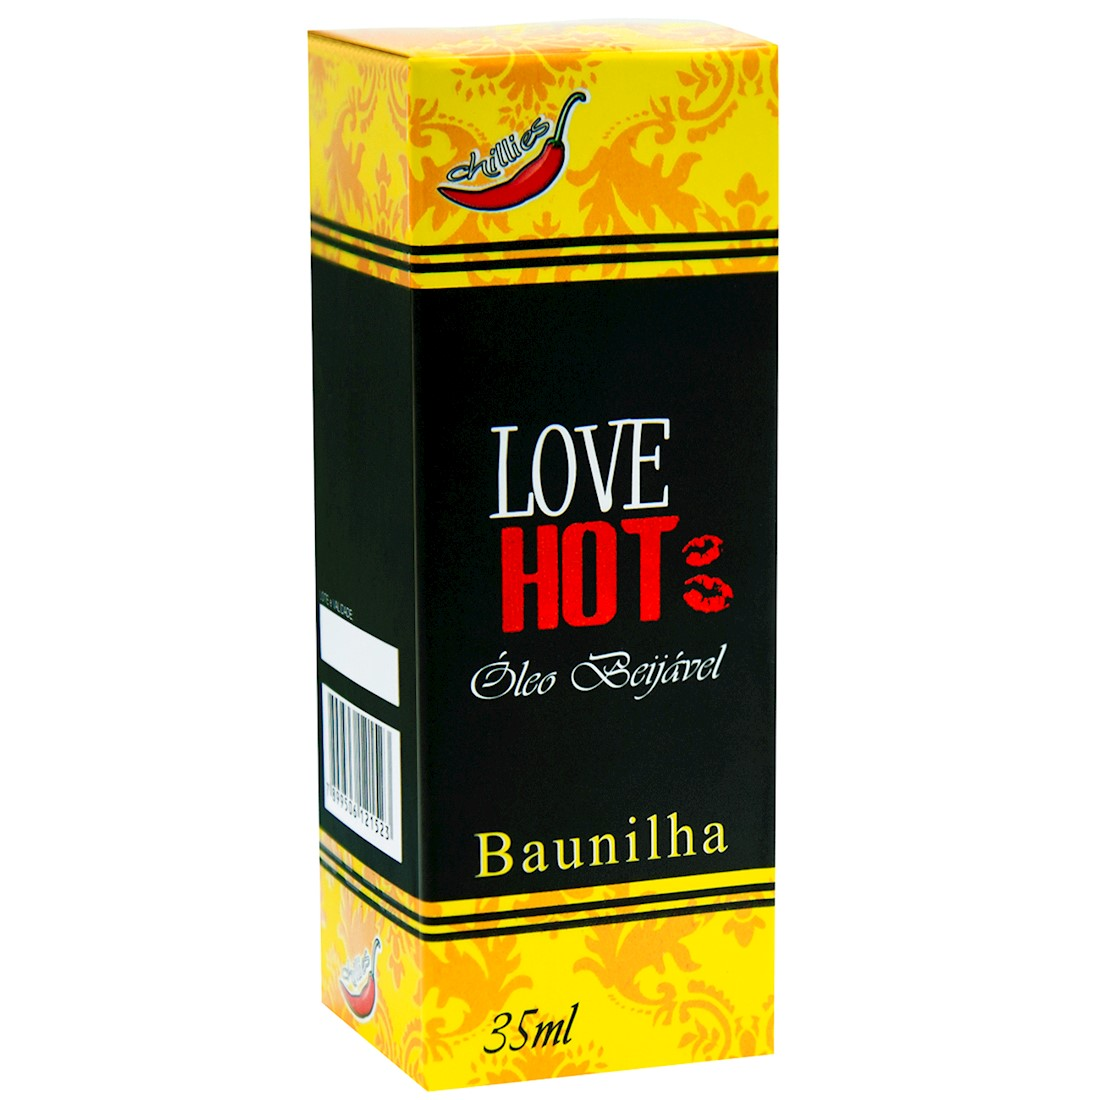 Love Hot Baunilha 35ml - C130